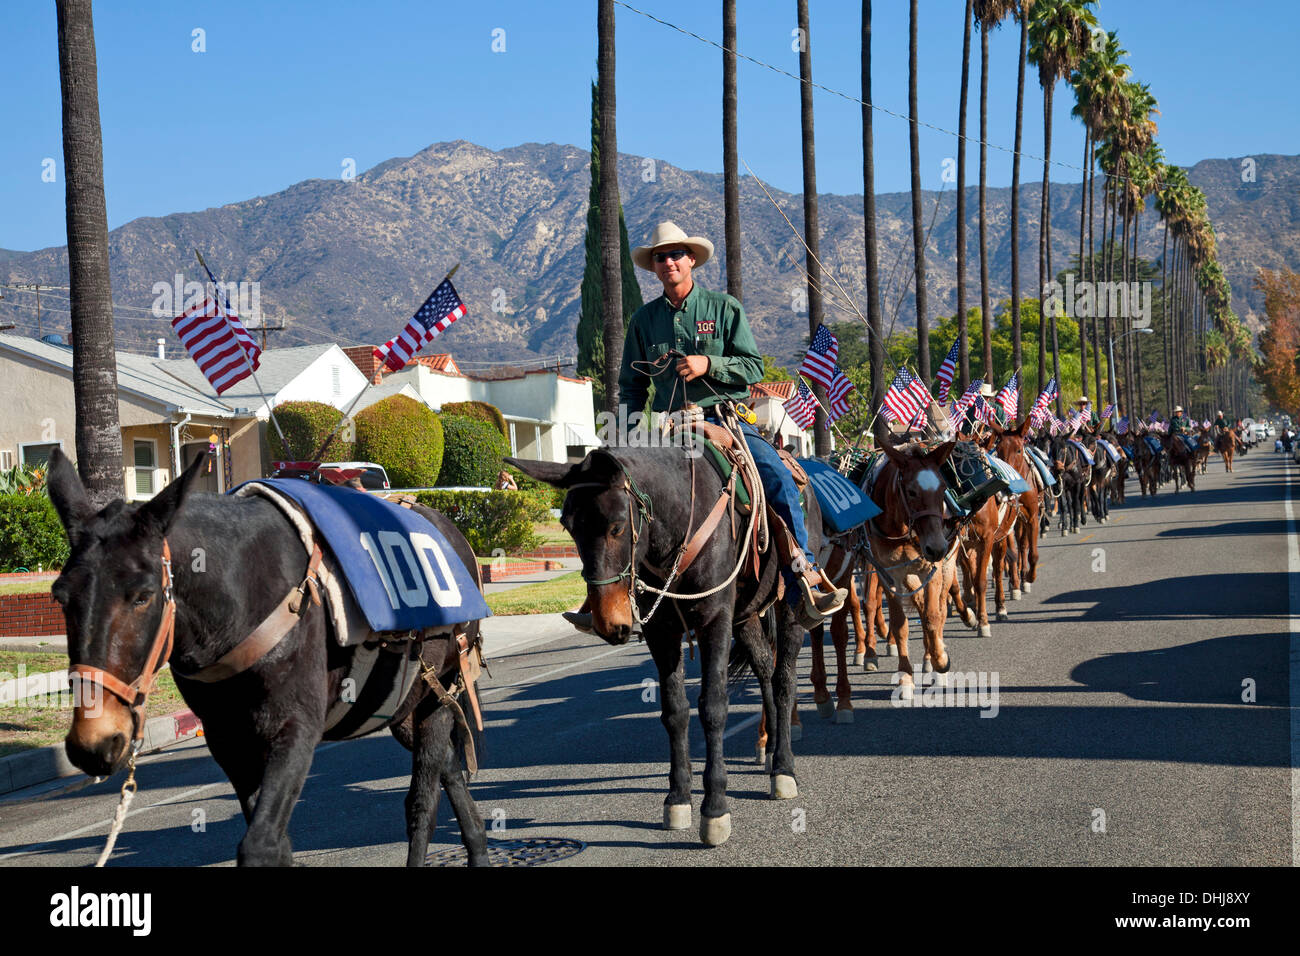 Glendale, California, USA. 11th Nov, 2013. a Veterans Day mule train parade in Glendale, California that is the last leg of a commemorative artist action called 'One Hundred Mules Walking the Los Angeles Aqueduct', which was a month long, 240 mile journey from Owens Valley to Los Angeles that commemorates the 100 year anniversary of the opening of the Los Angeles Aqueduct. Credit:  Ambient Images Inc./Alamy Live News - Stock Image